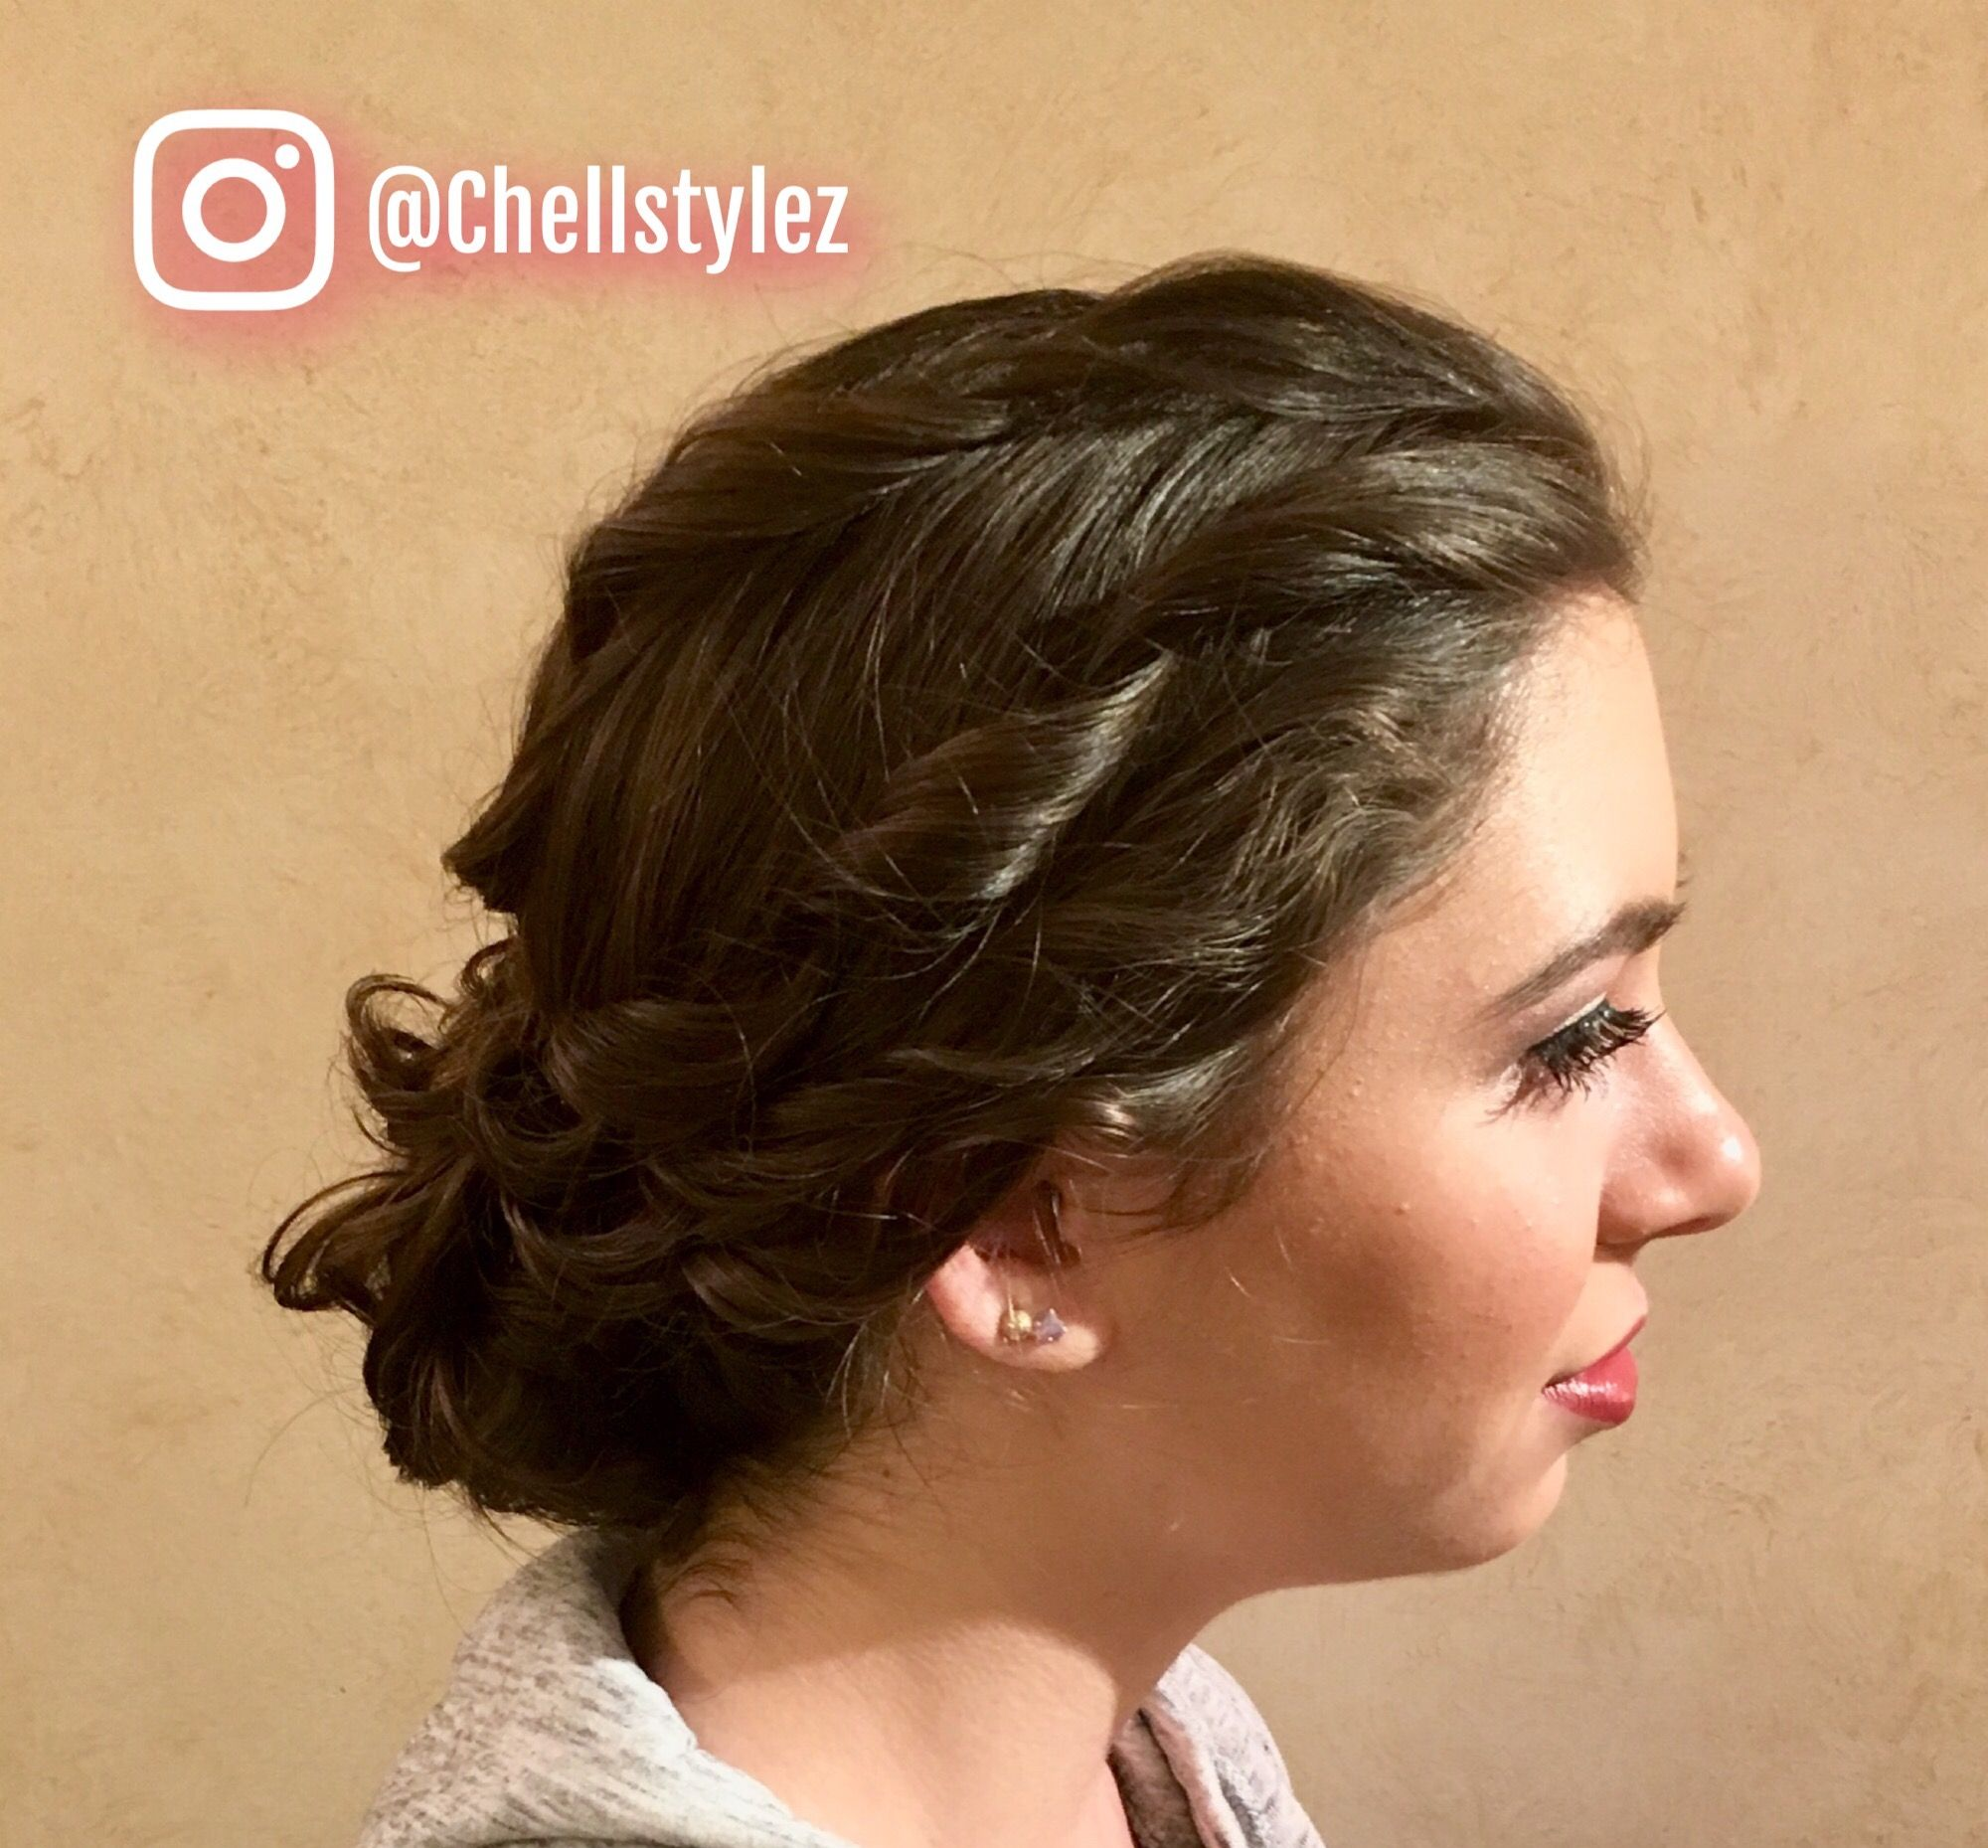 Updo For S Sweet 16 Softupdo Updo Hair Pinterest Sweet 16